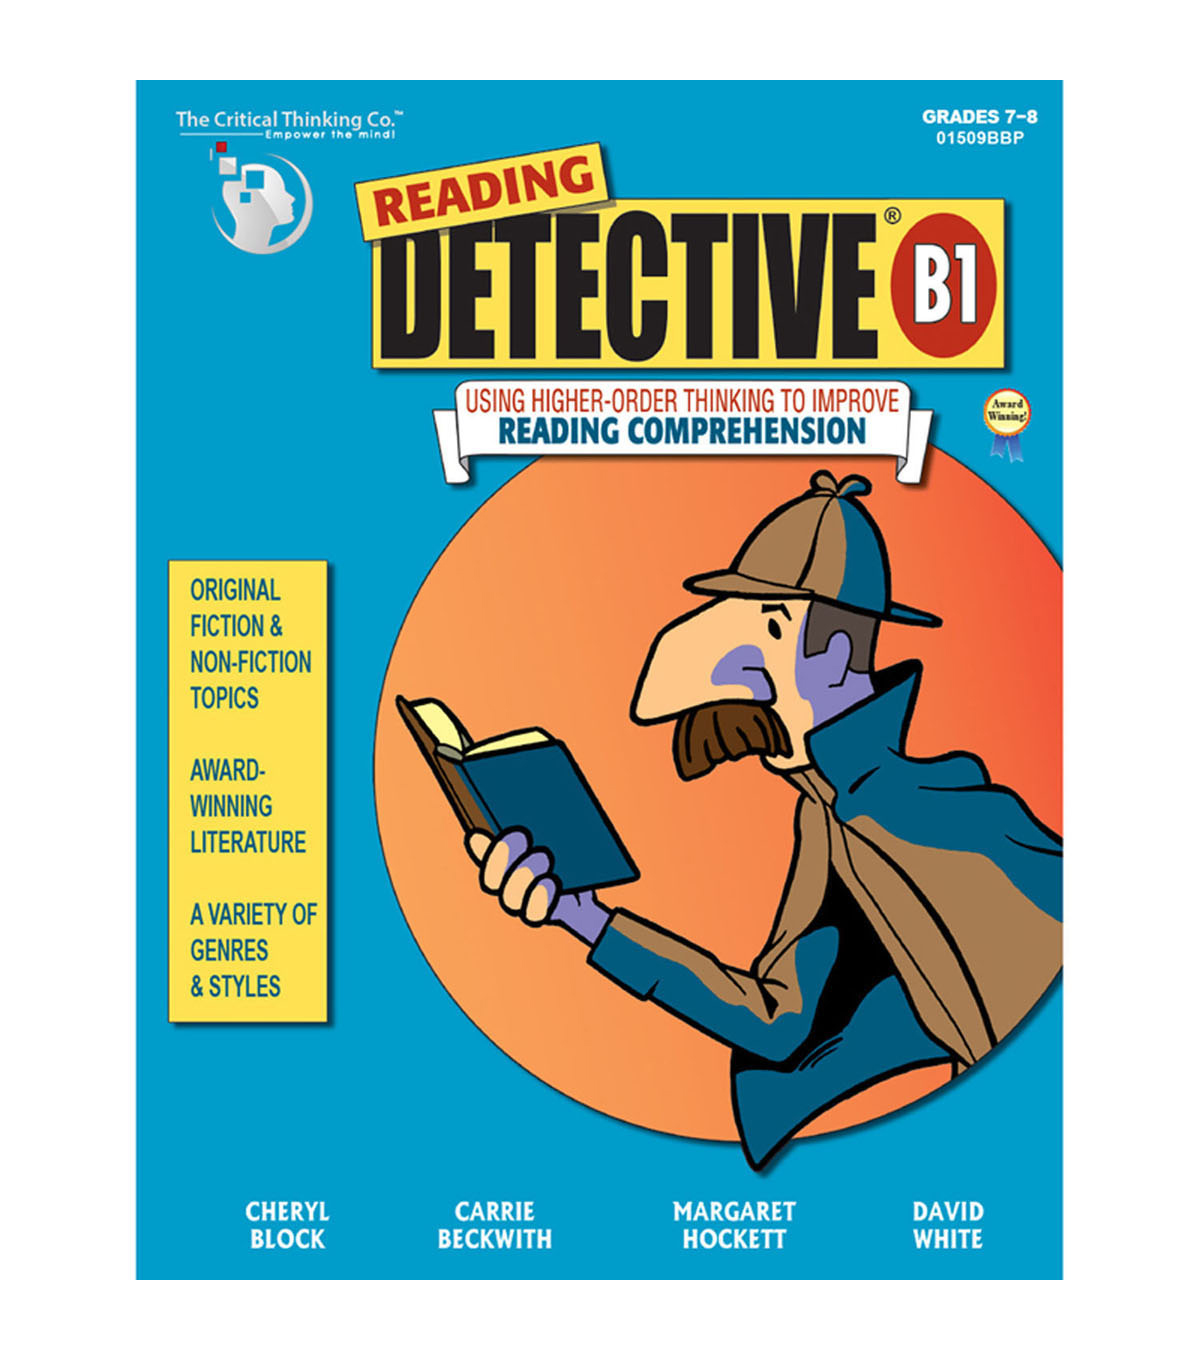 Reading Detective B1 Book for Grades 7-8